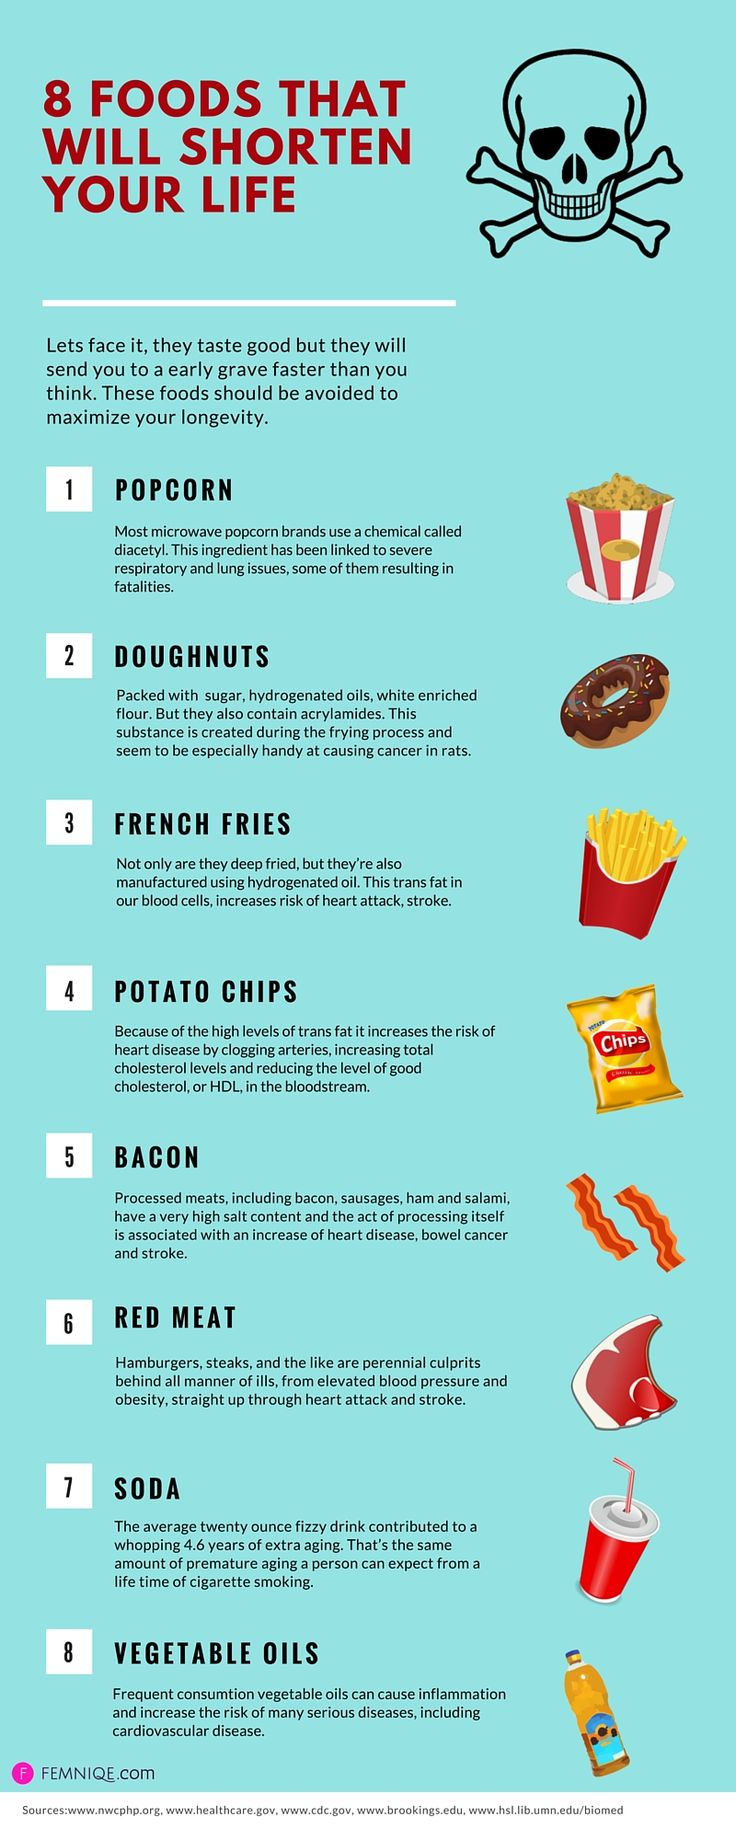 8 Unhealthy Foods To Avoid: Foods That Will Shorten Your Life!